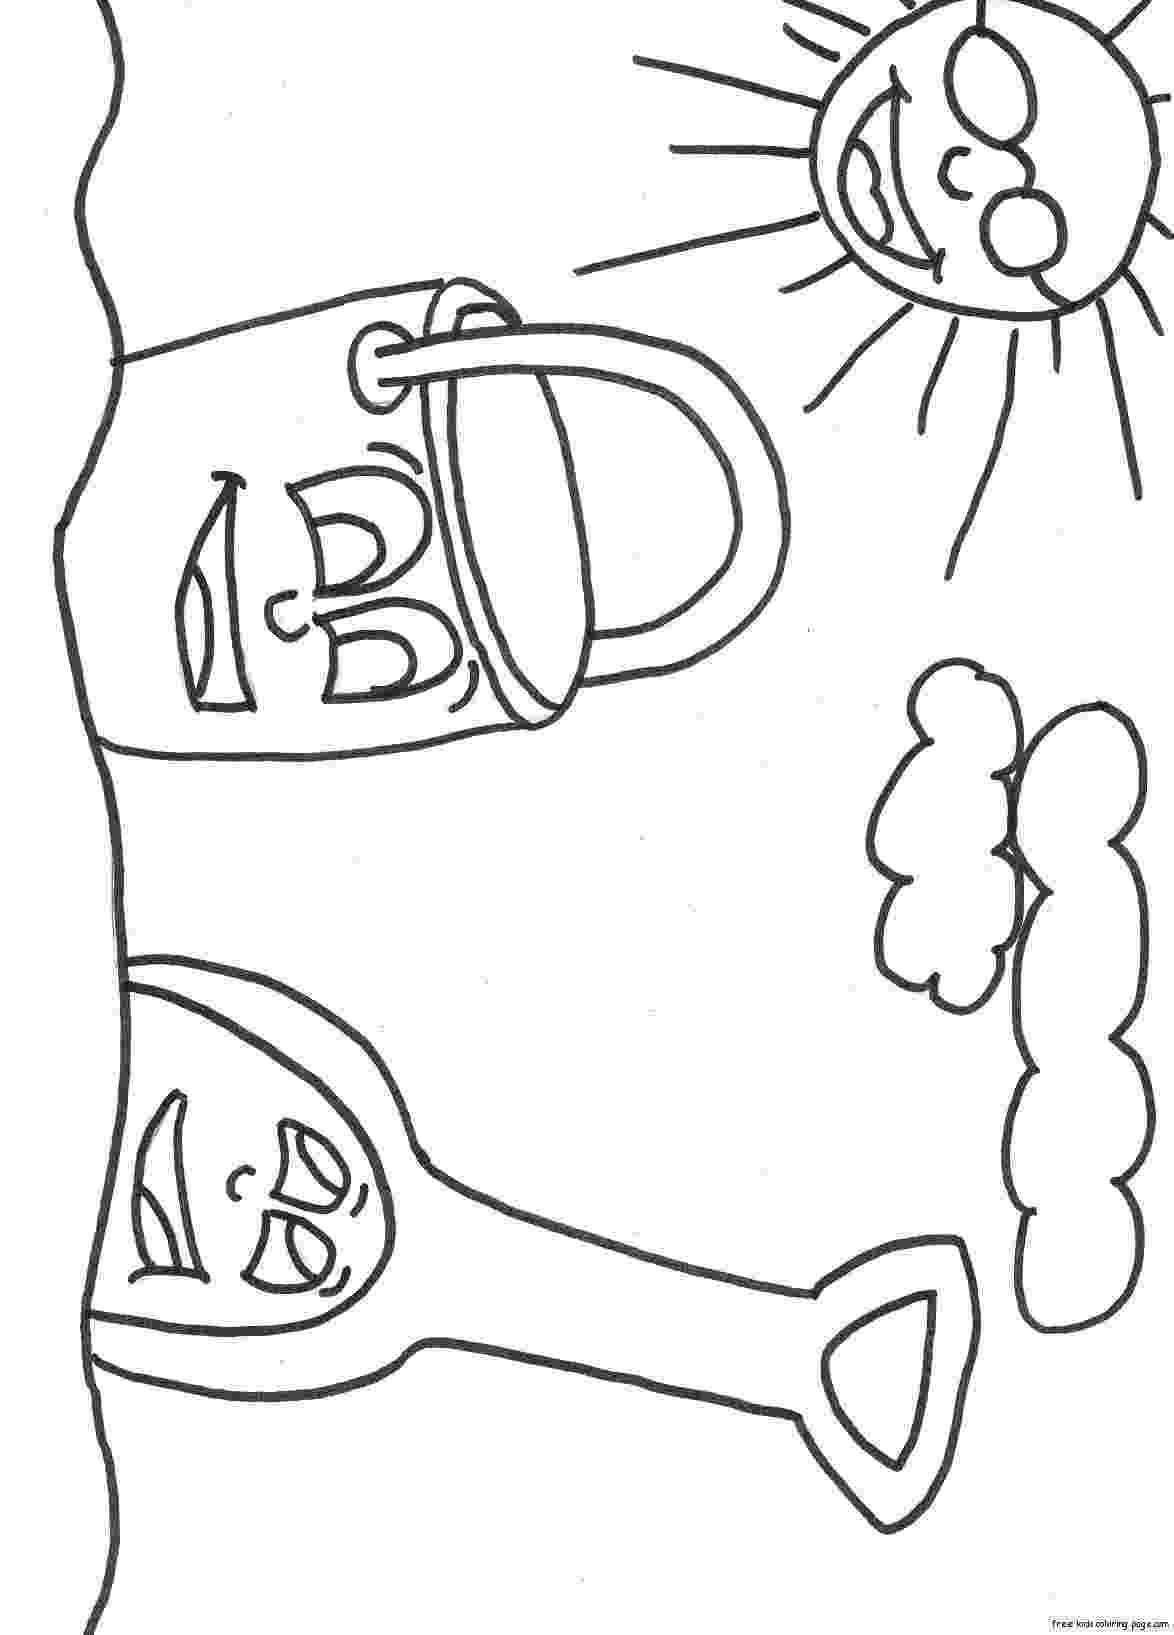 print out coloring pages brave coloring pages best coloring pages for kids out pages print coloring